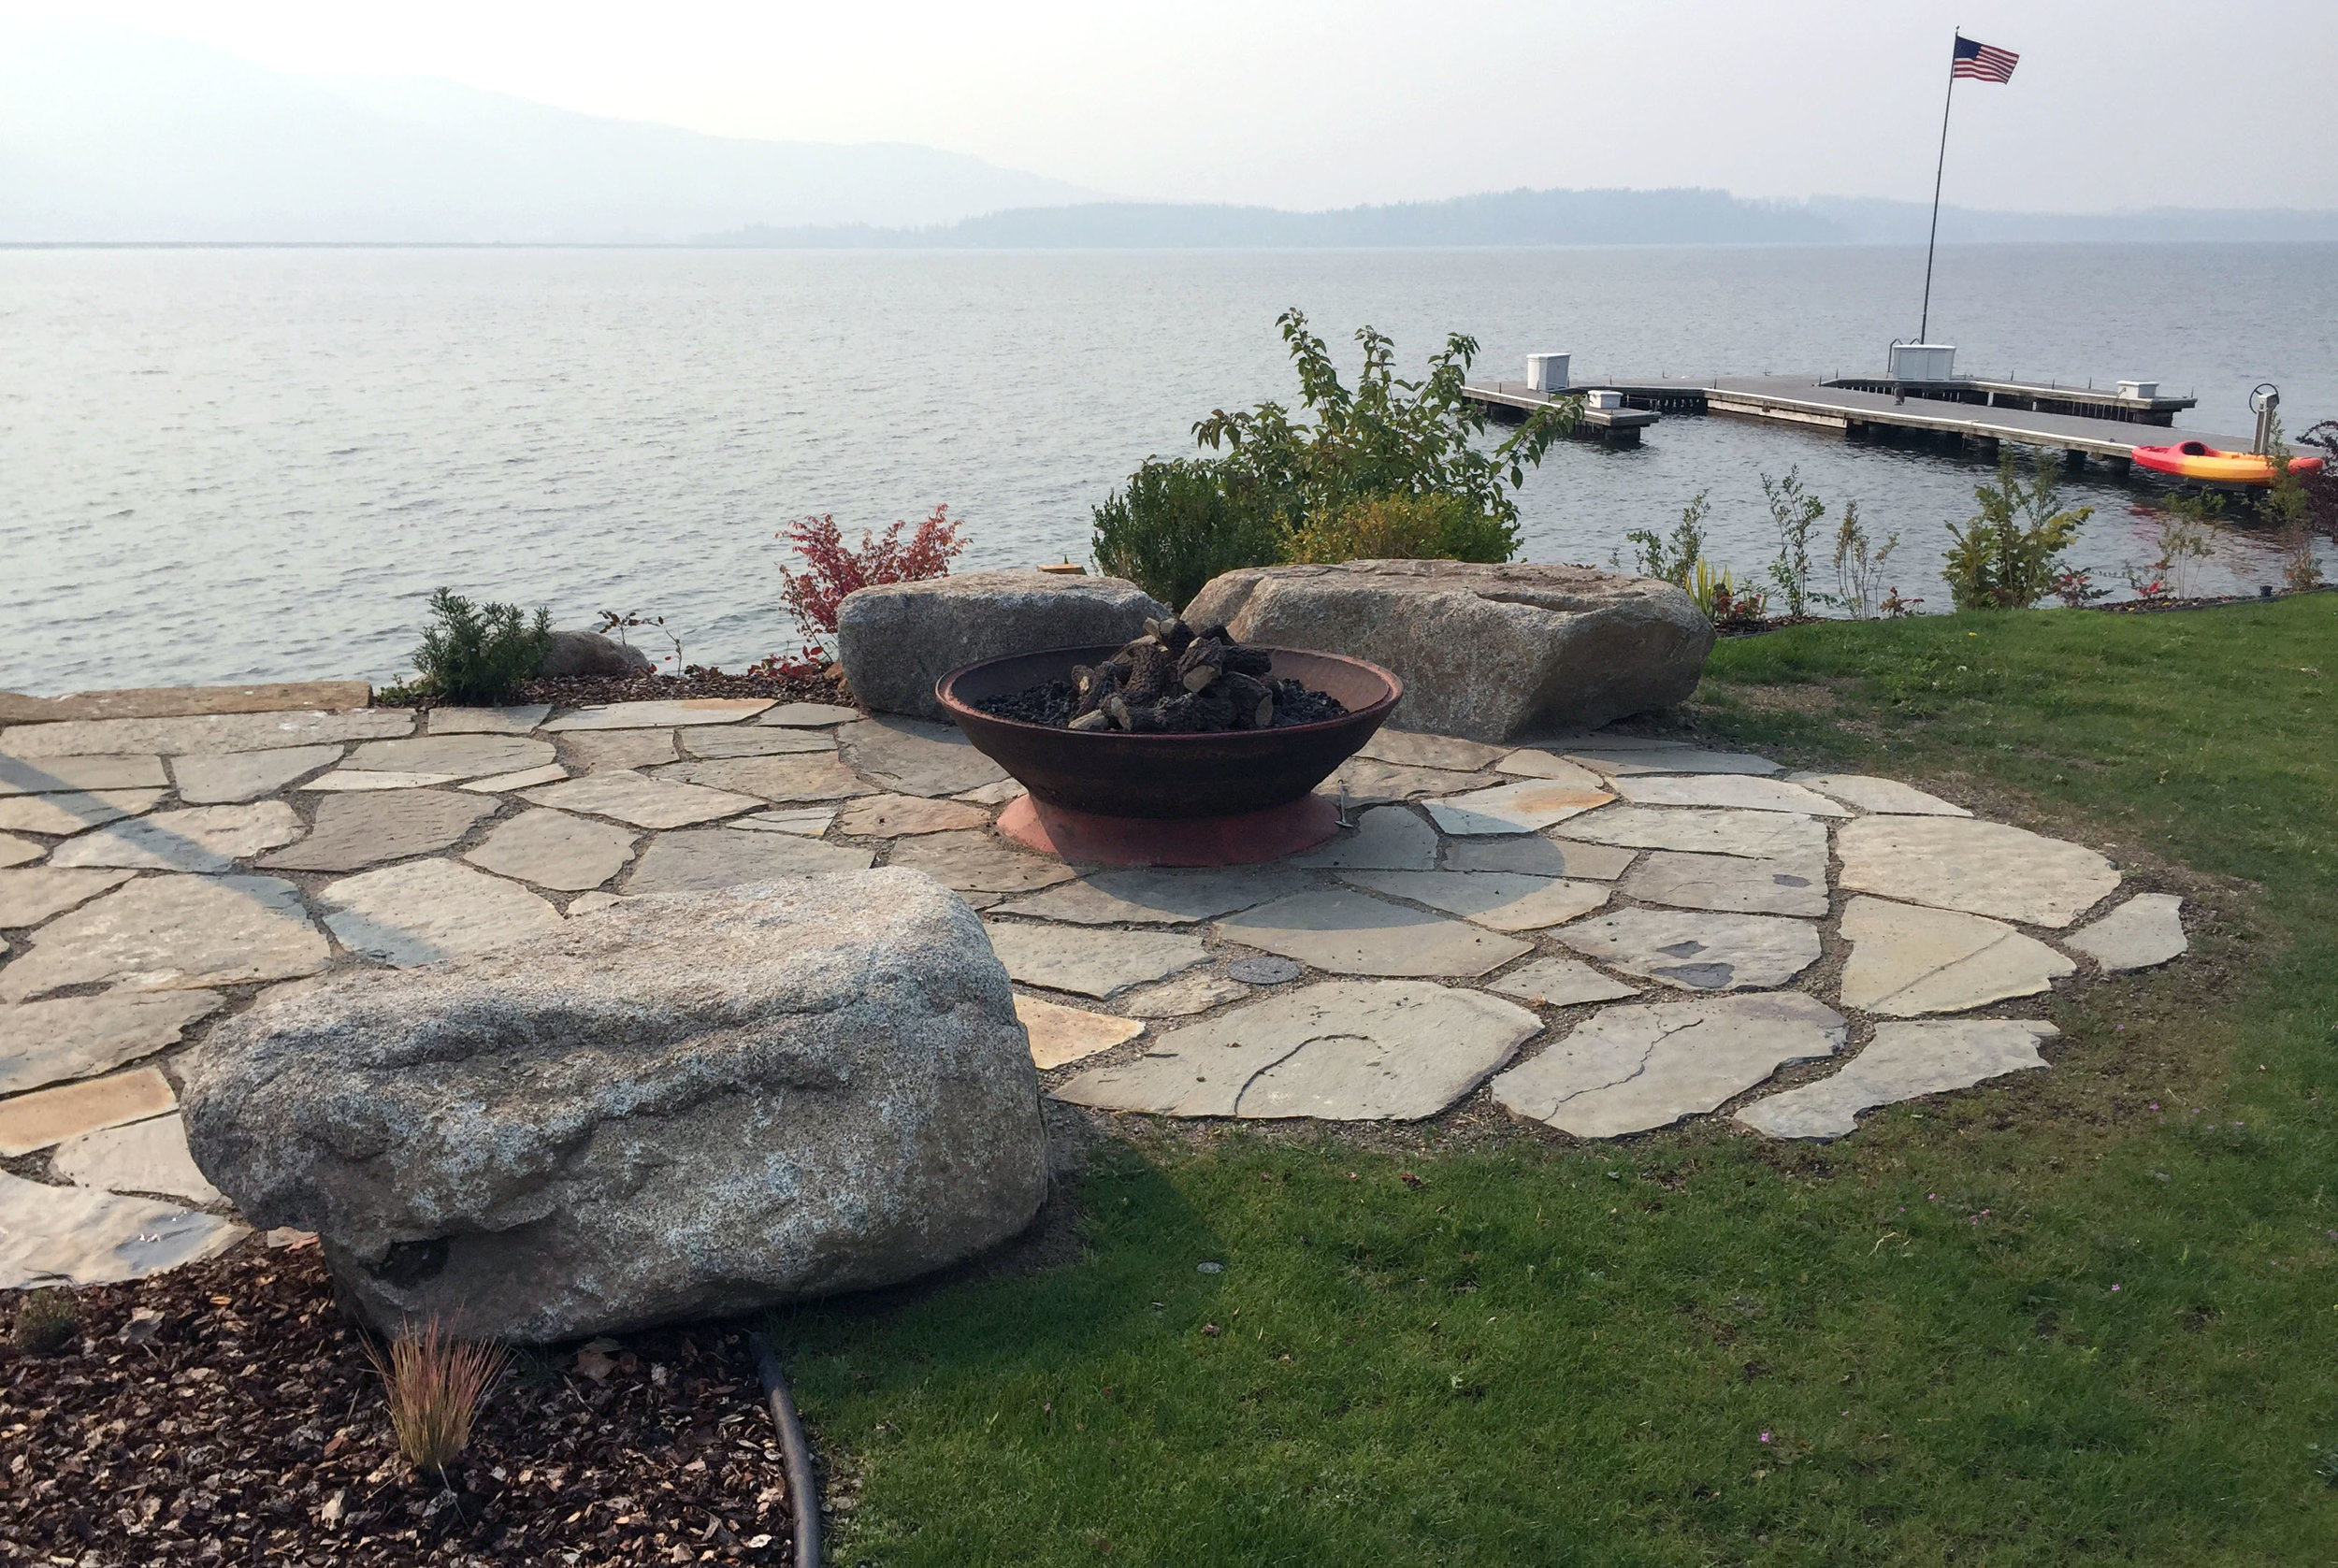 This flagstone patio creates a natural, low-impact entertaining area by the water's edge.